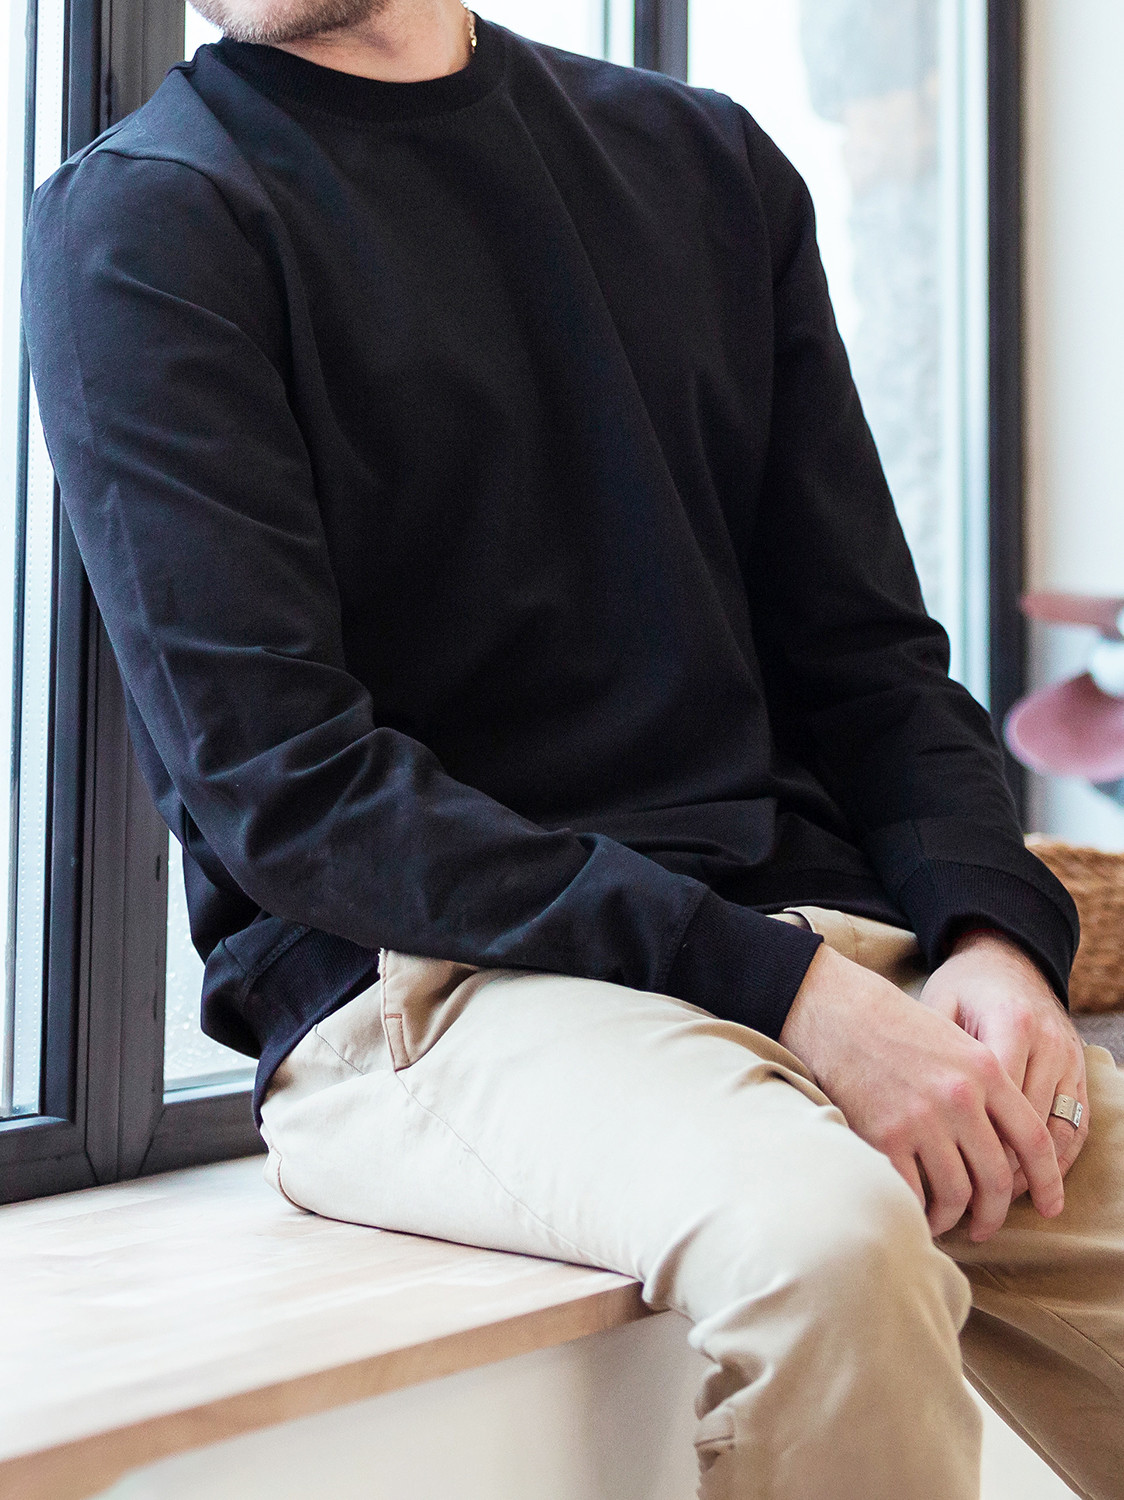 Men's outfit idea for 2021 with navy plain sweatshirt, grey plain crew neck t-shirt, neutral chinos, brown boat shoes. Suitable for spring and fall.